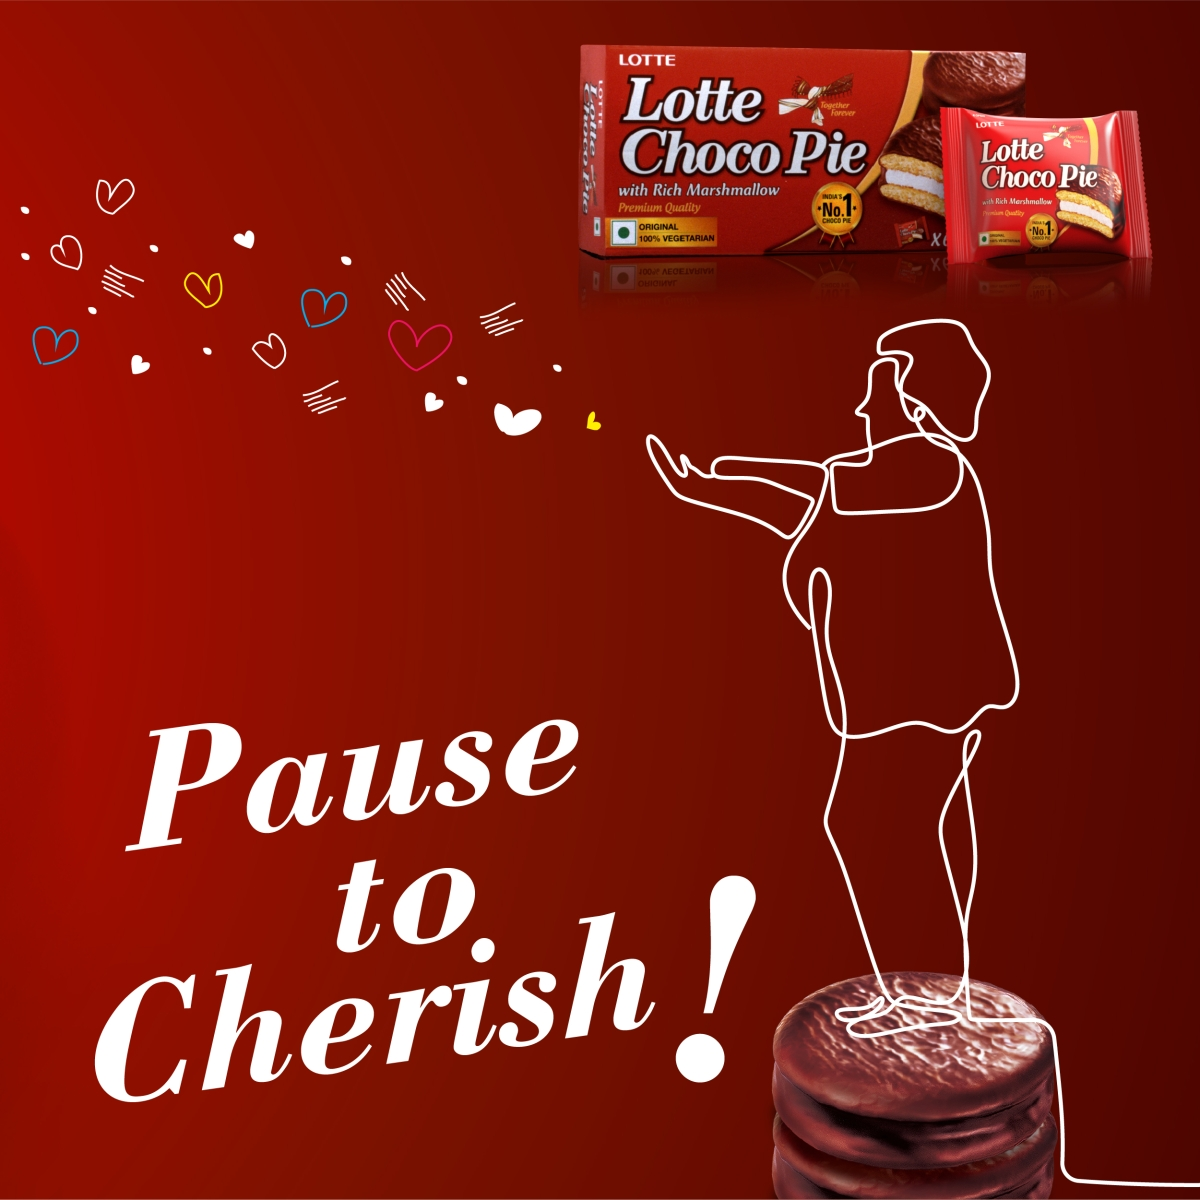 Lotte Choco Pie Creates First-Ever Valentine's Day campaign